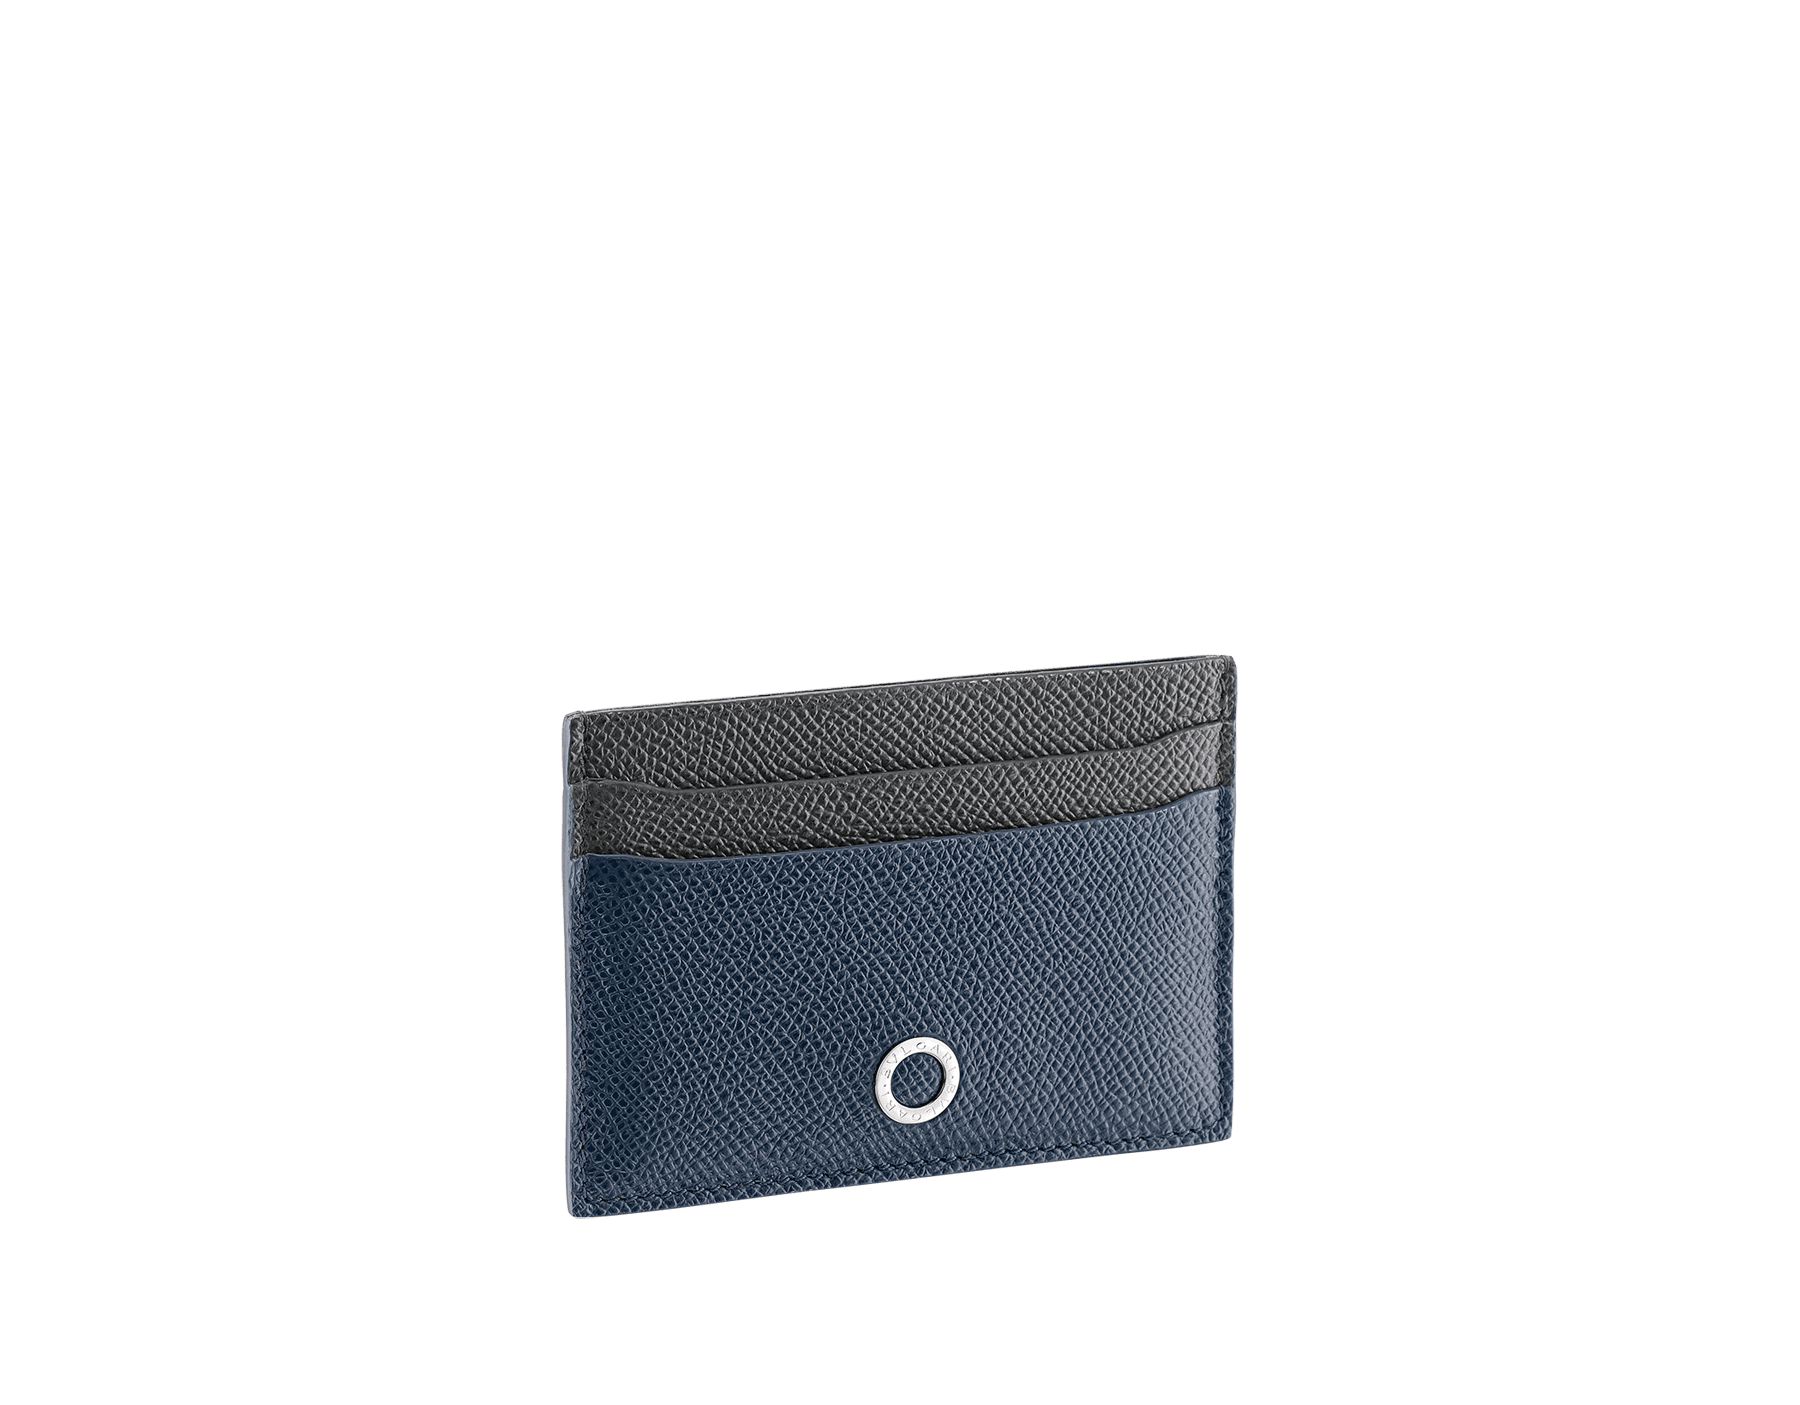 BVLGARI BVLGARI credit card holder in denim sapphire and charcoal diamond grain calf leather and blue slate nappa lining. Iconic logo decoration in palladium-plated brass. 289118 image 1